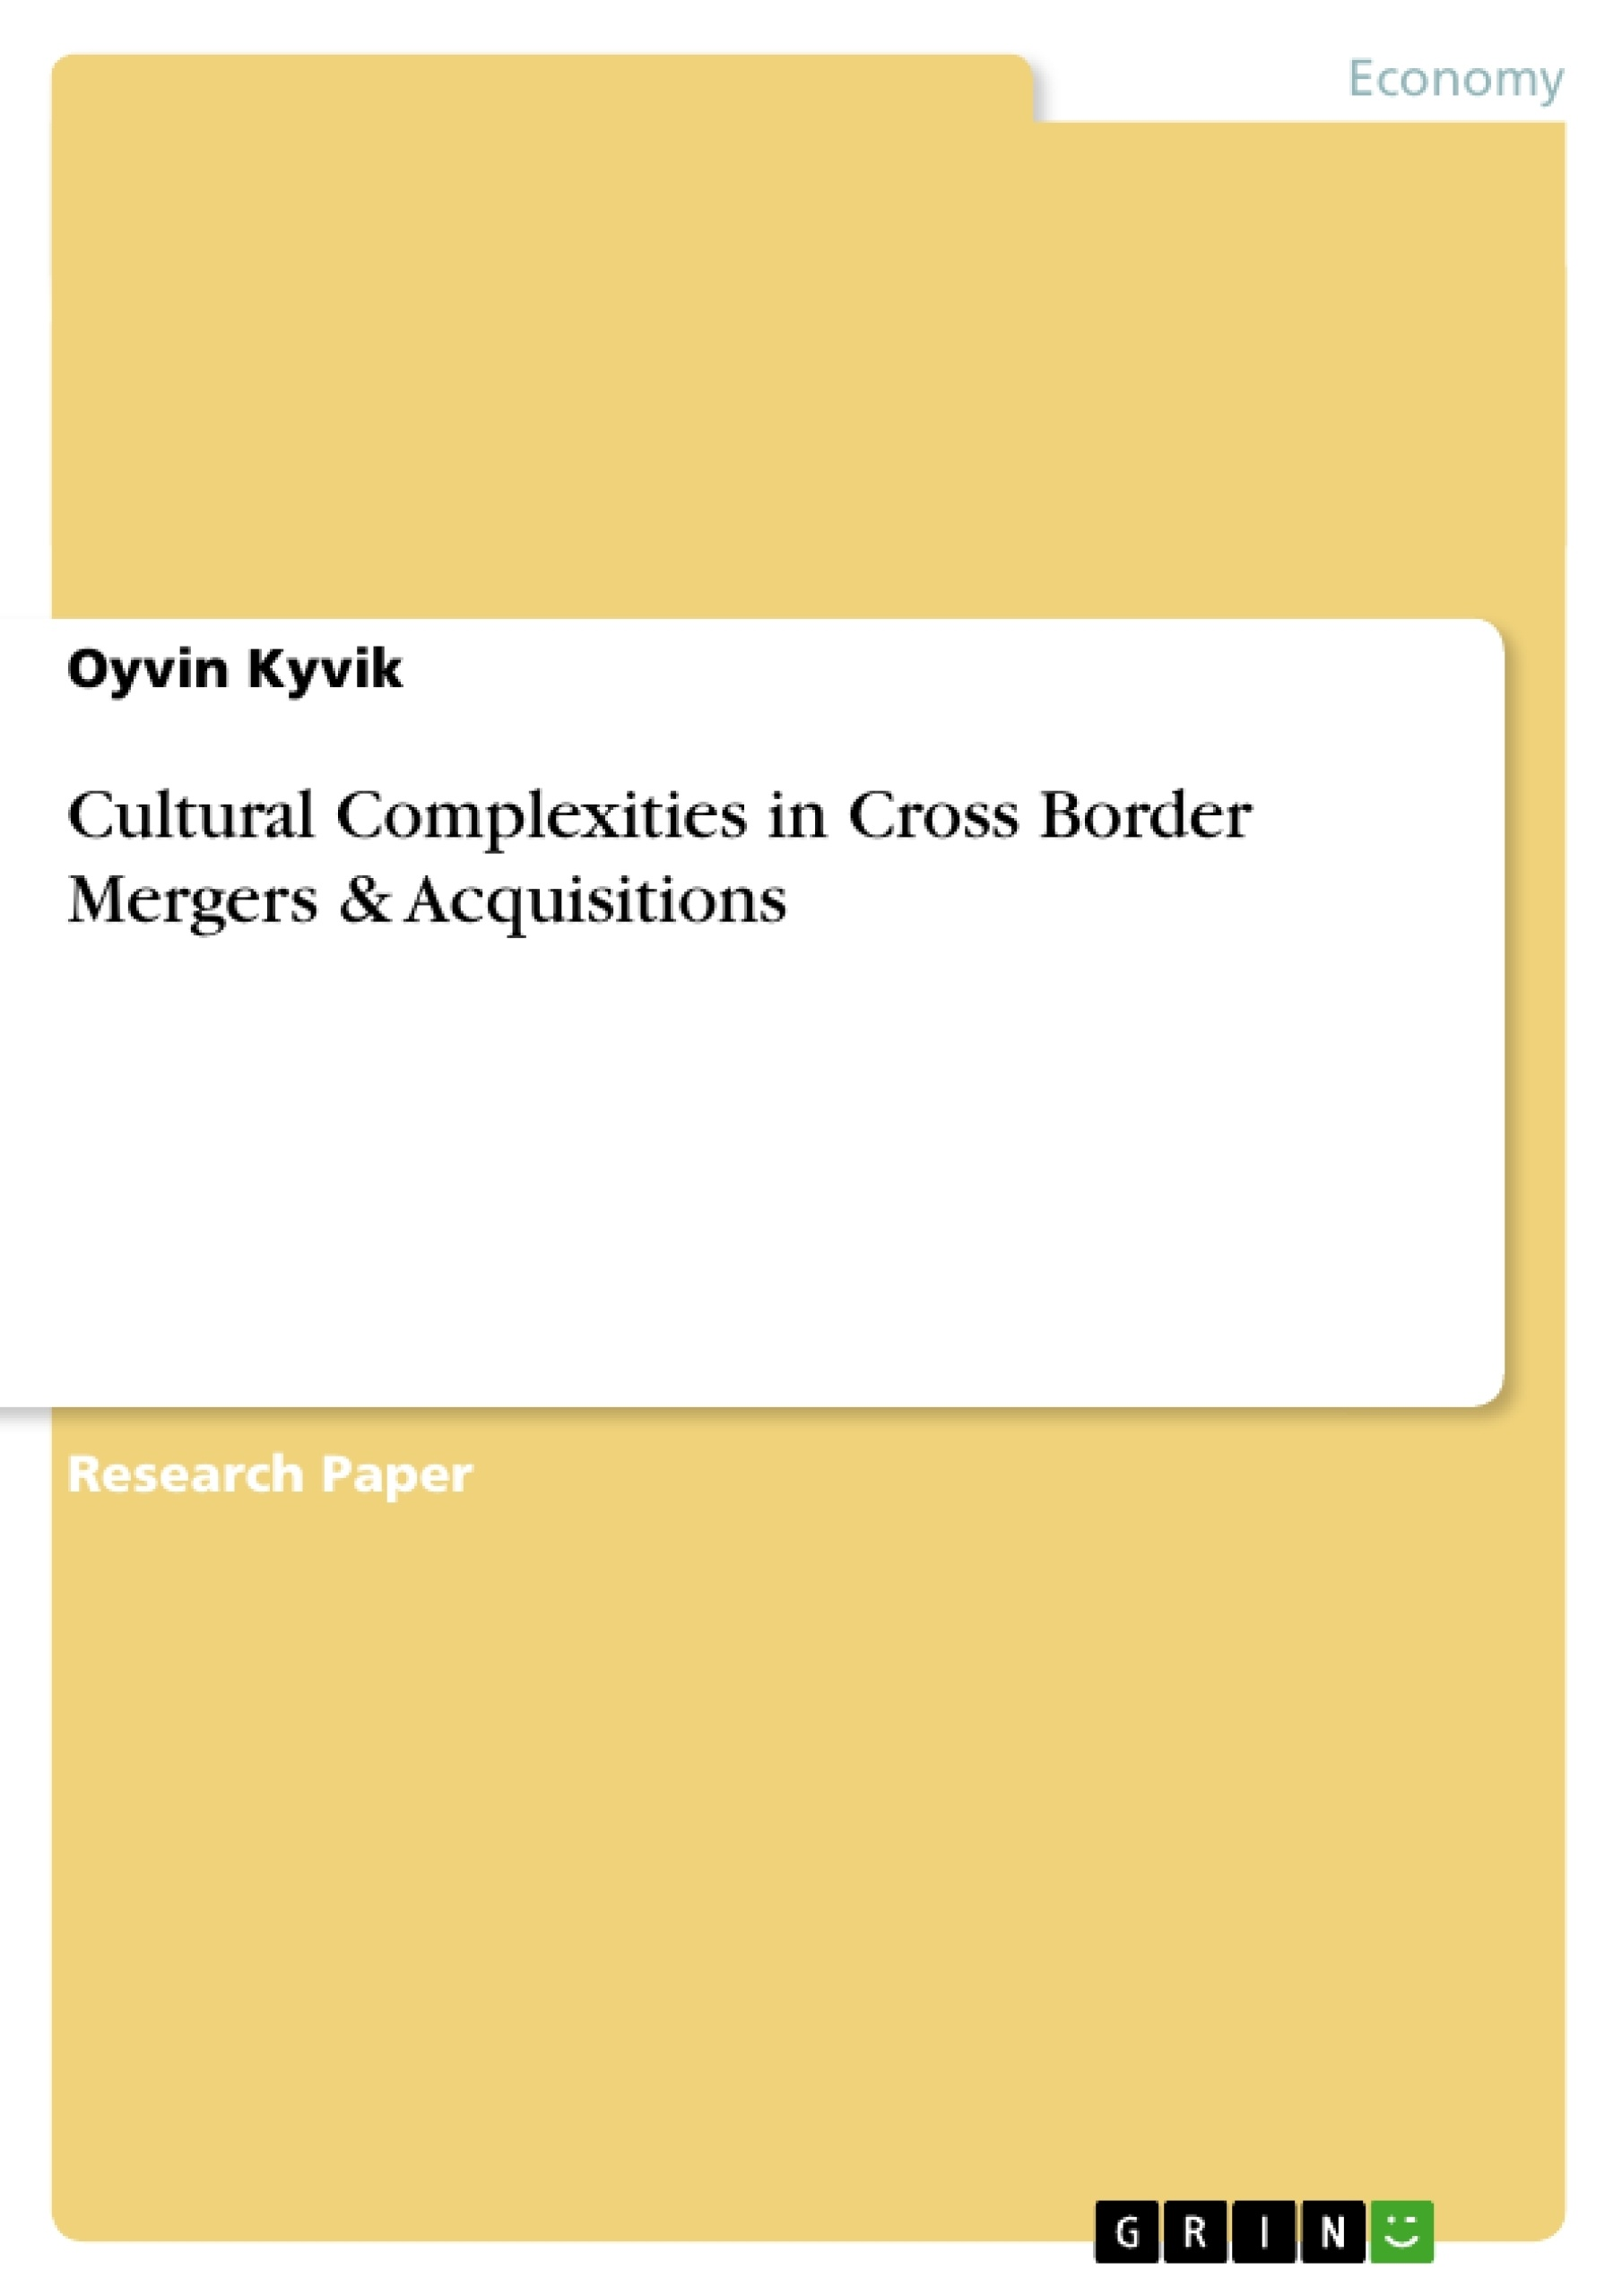 Title: Cultural Complexities in Cross Border Mergers & Acquisitions